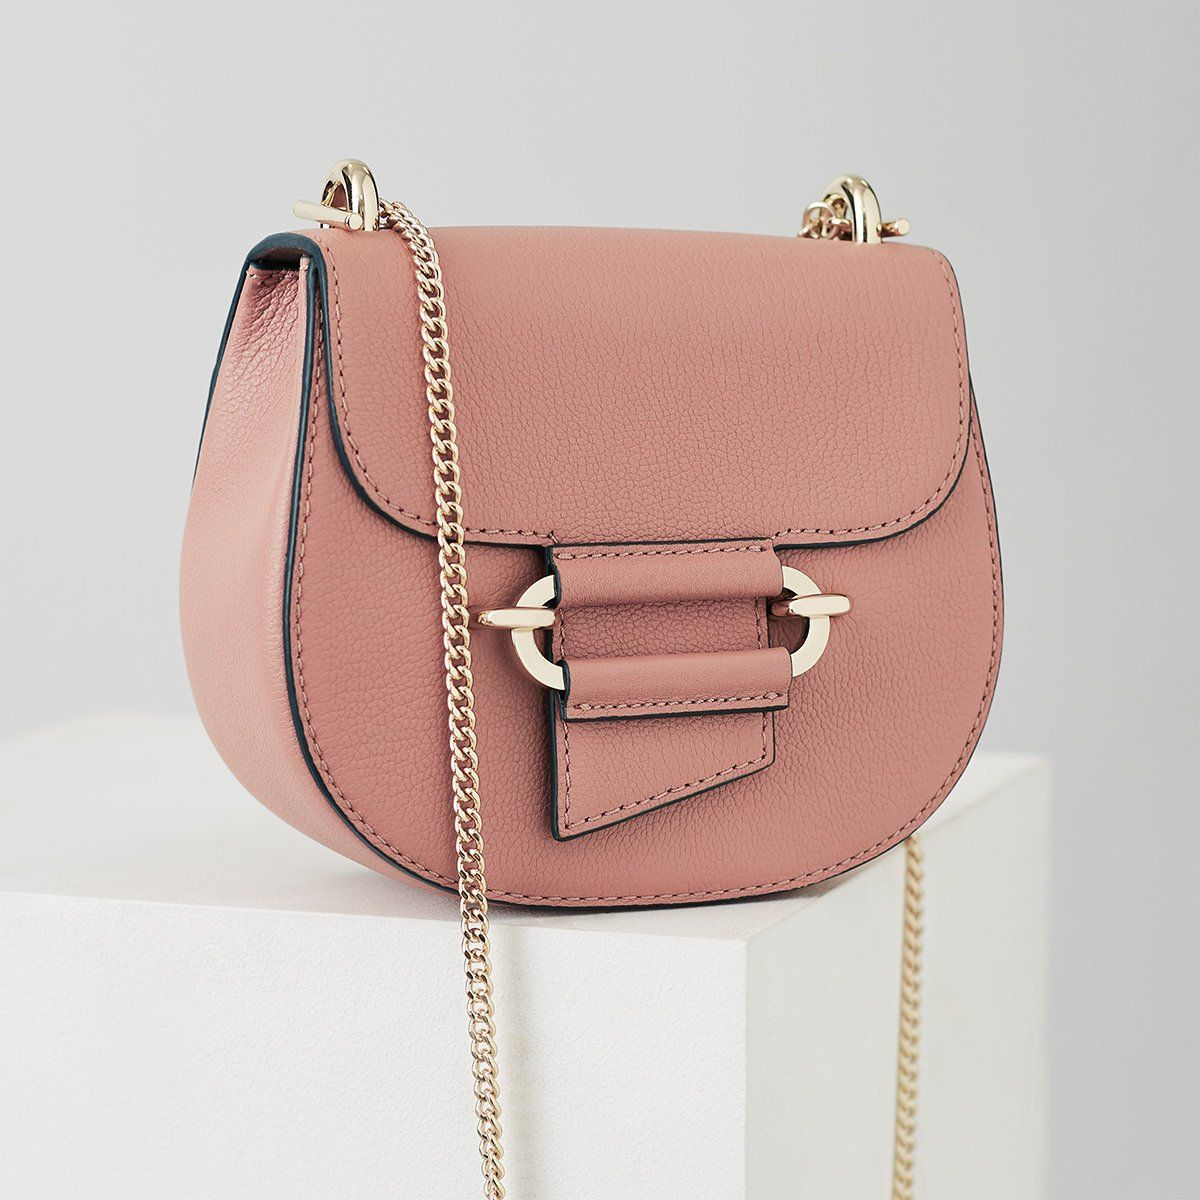 23be77bb4eda The maltby mini mini cross-body bag in plays its part in our iconic cross